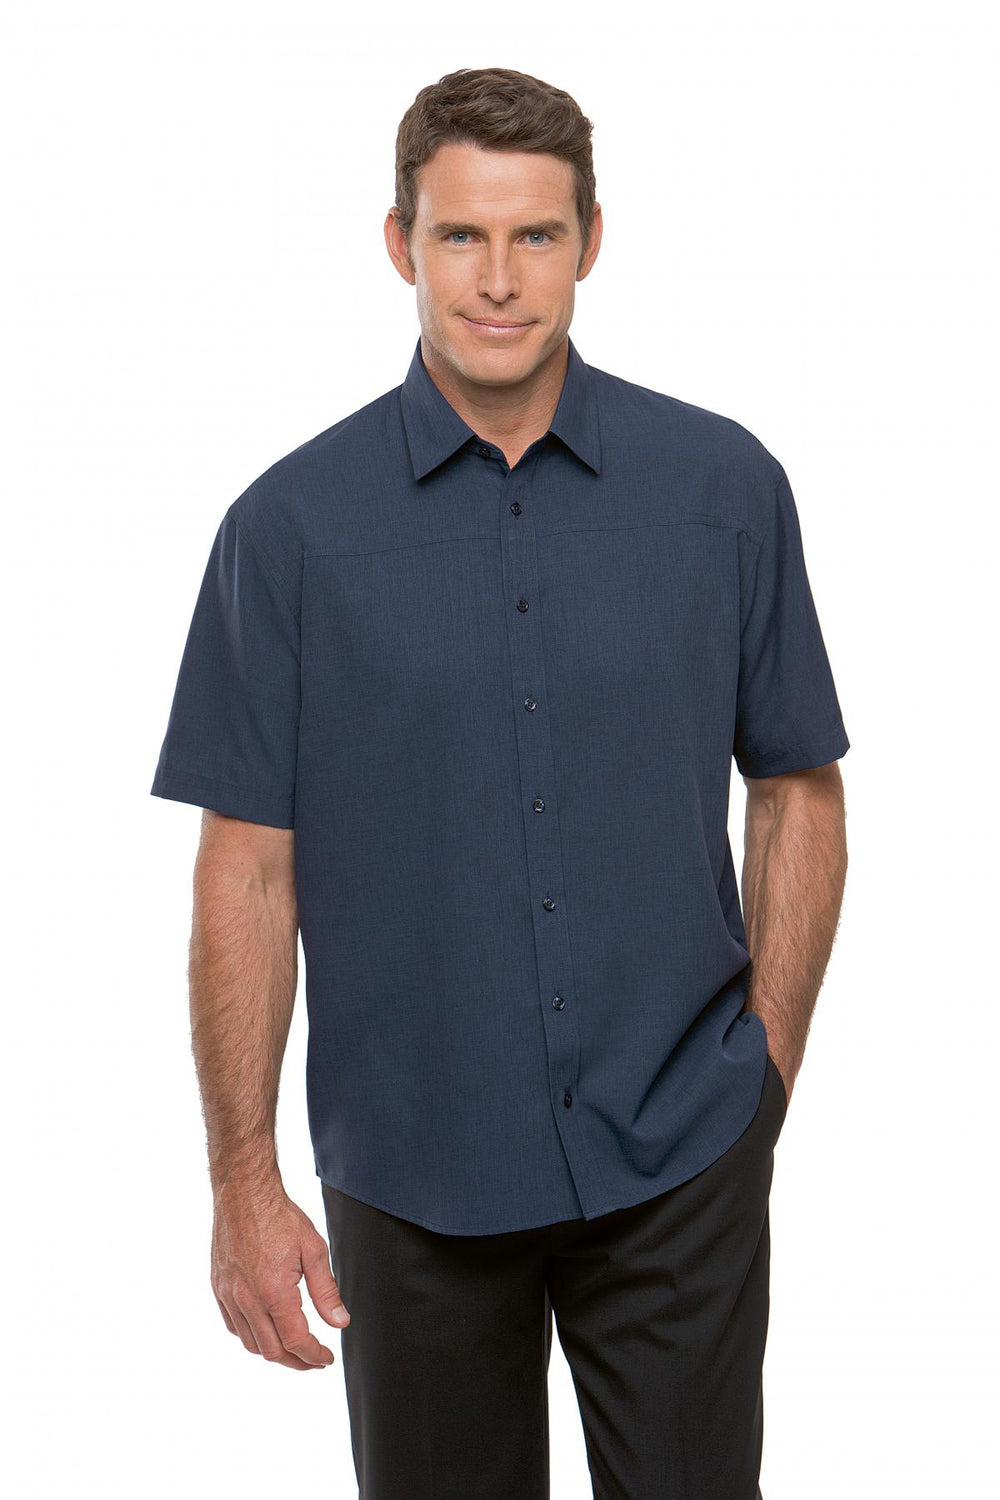 Ezylin Men's Shirt